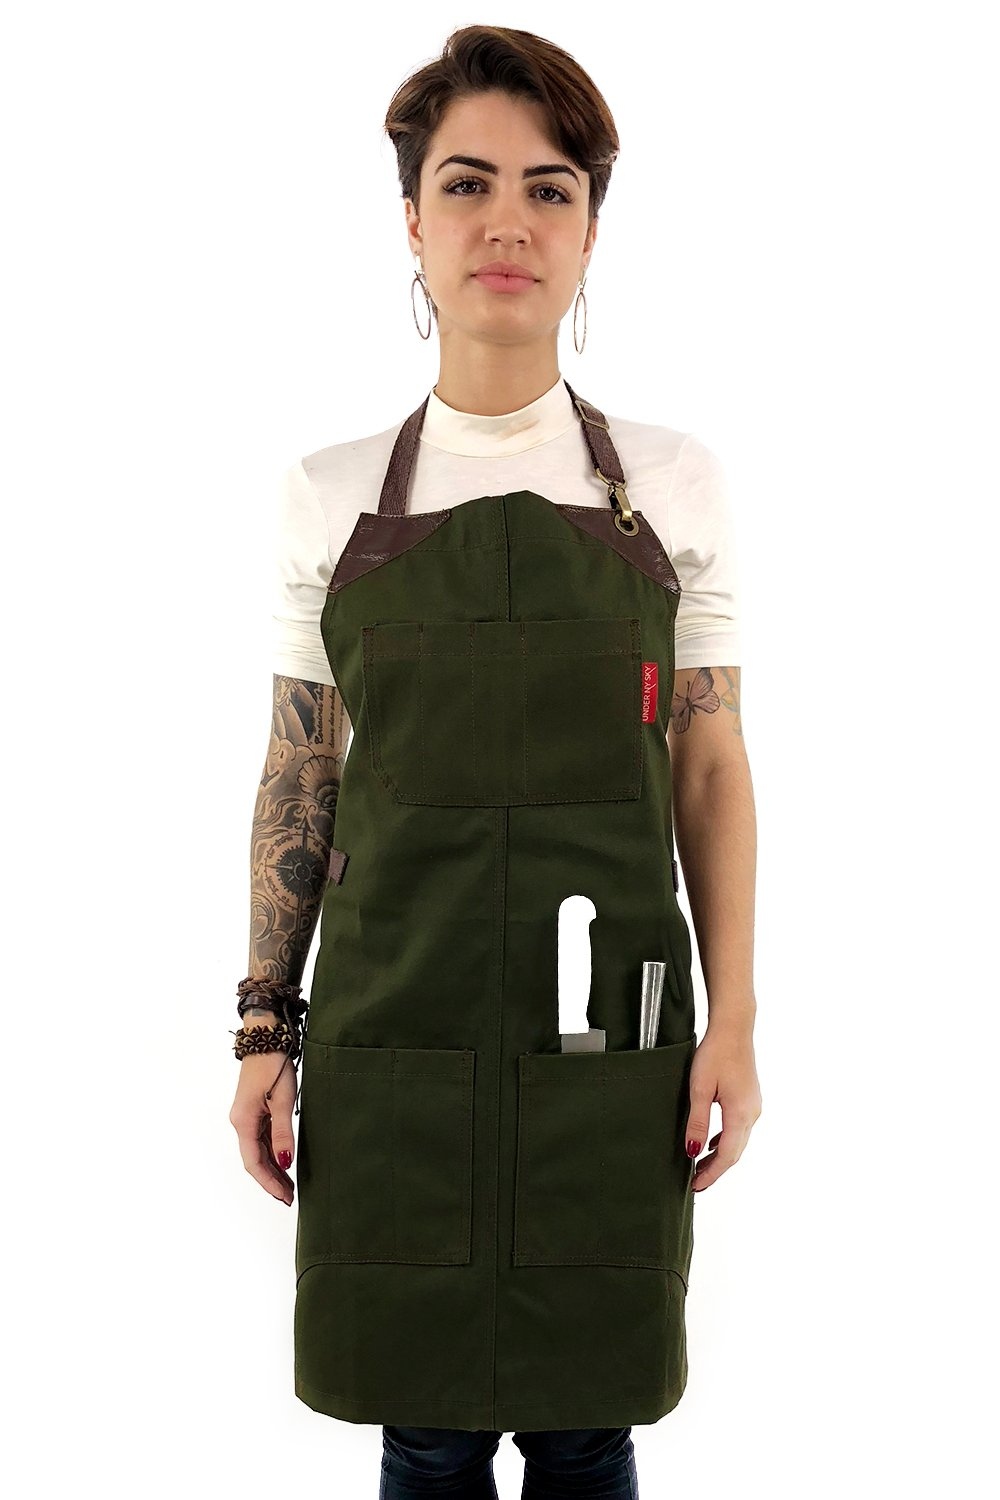 Under NY Sky Knife-Roll Forest Green Apron – Heavy-Duty Canvas, Leather Reinforcement – Adjustable for Men and Women – Pro Chef, Barbecue, Butcher, Bartender, Woodworker, Tool Aprons